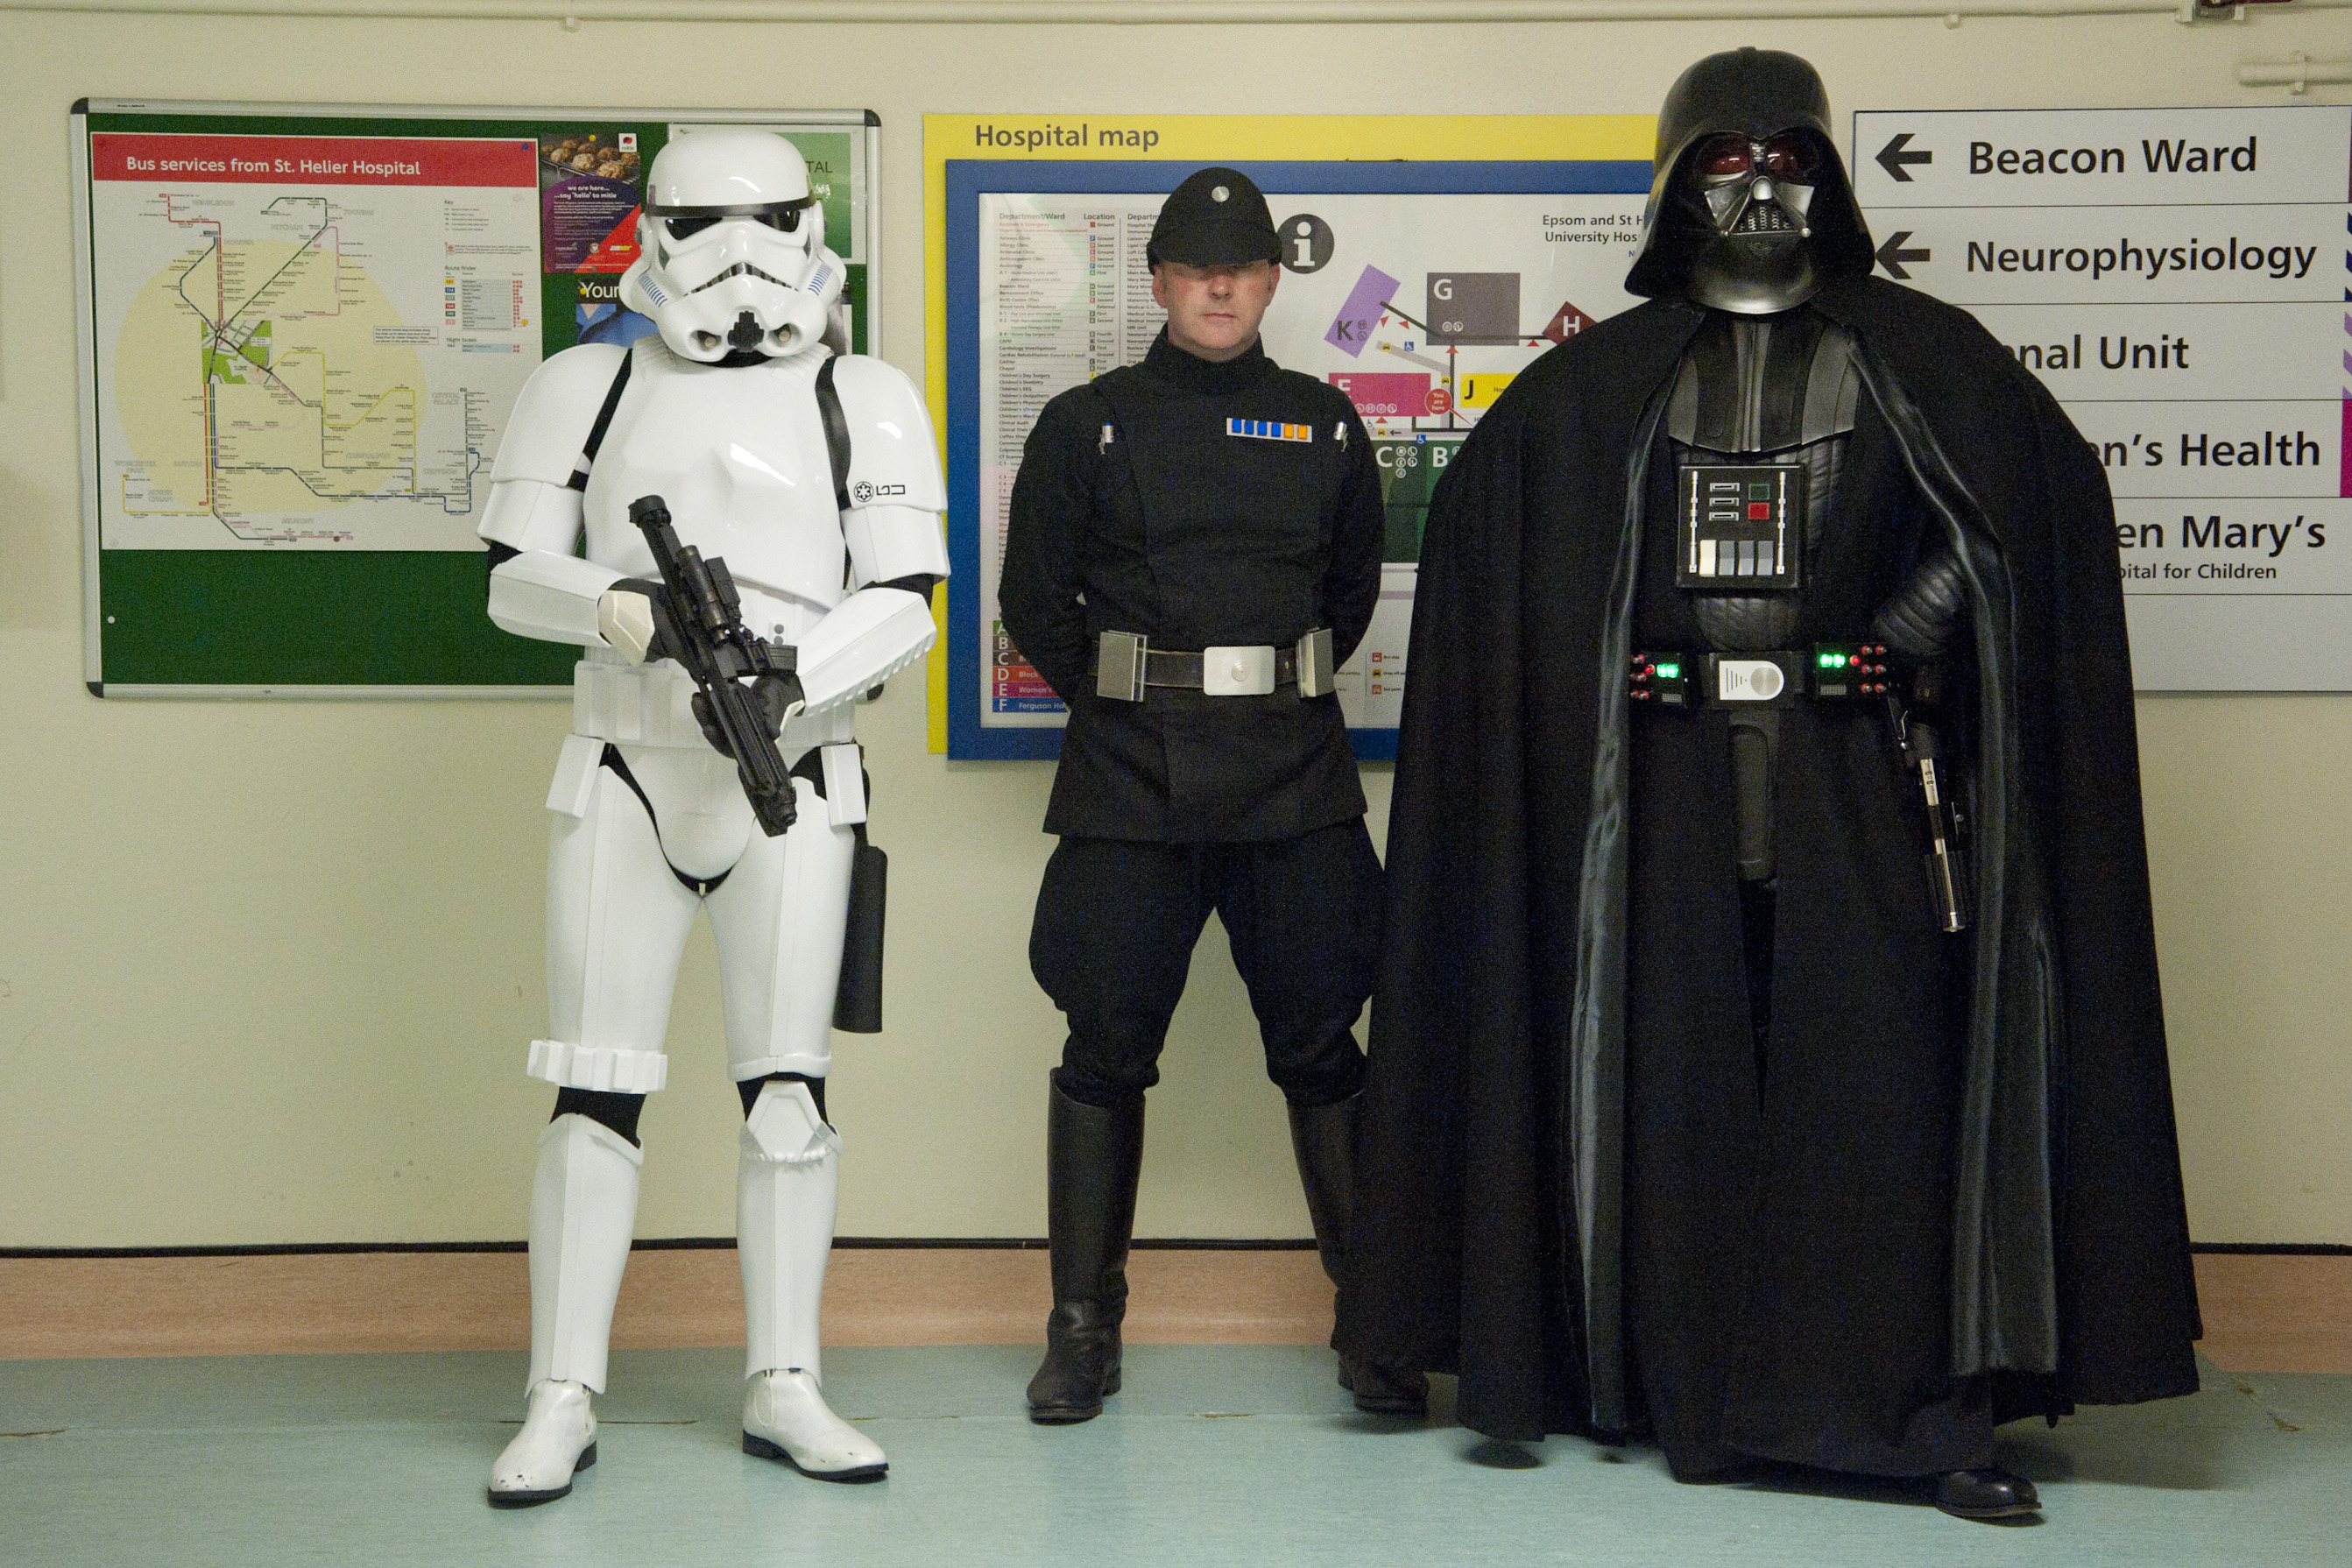 Stormtroopers and Darth Vader